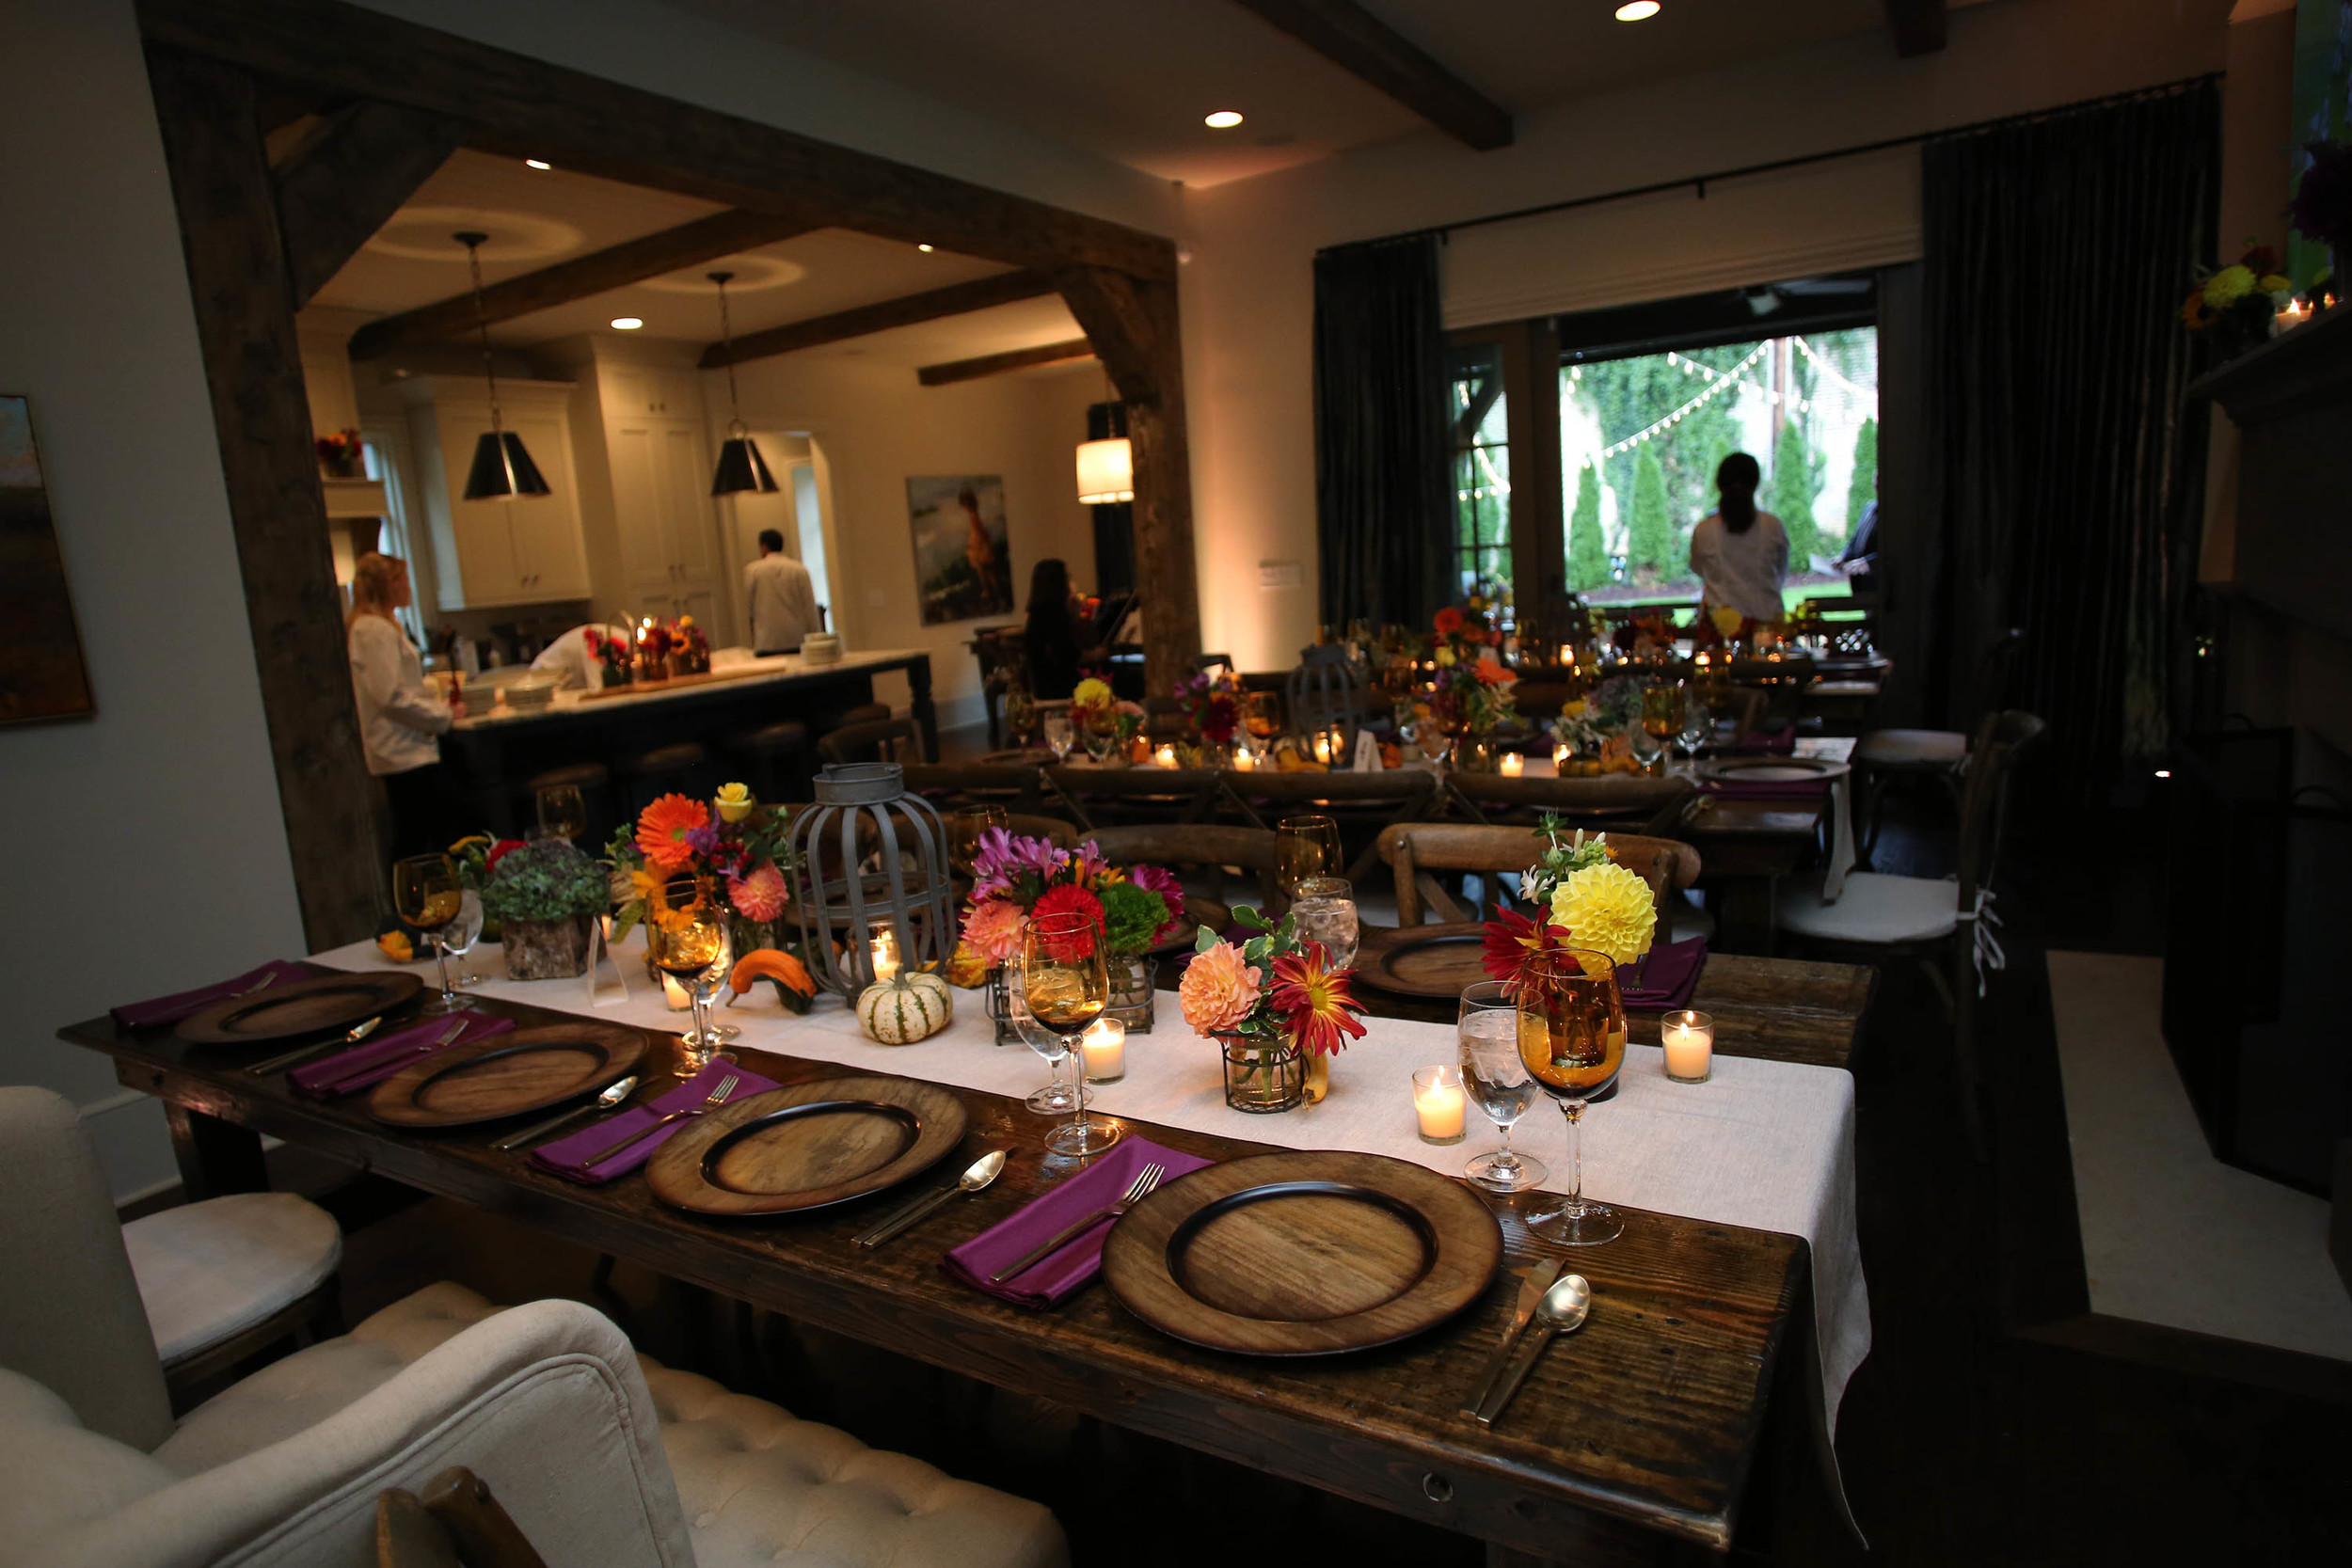 a beautiful interior wedding space perfect for a rainy day in the Fall!